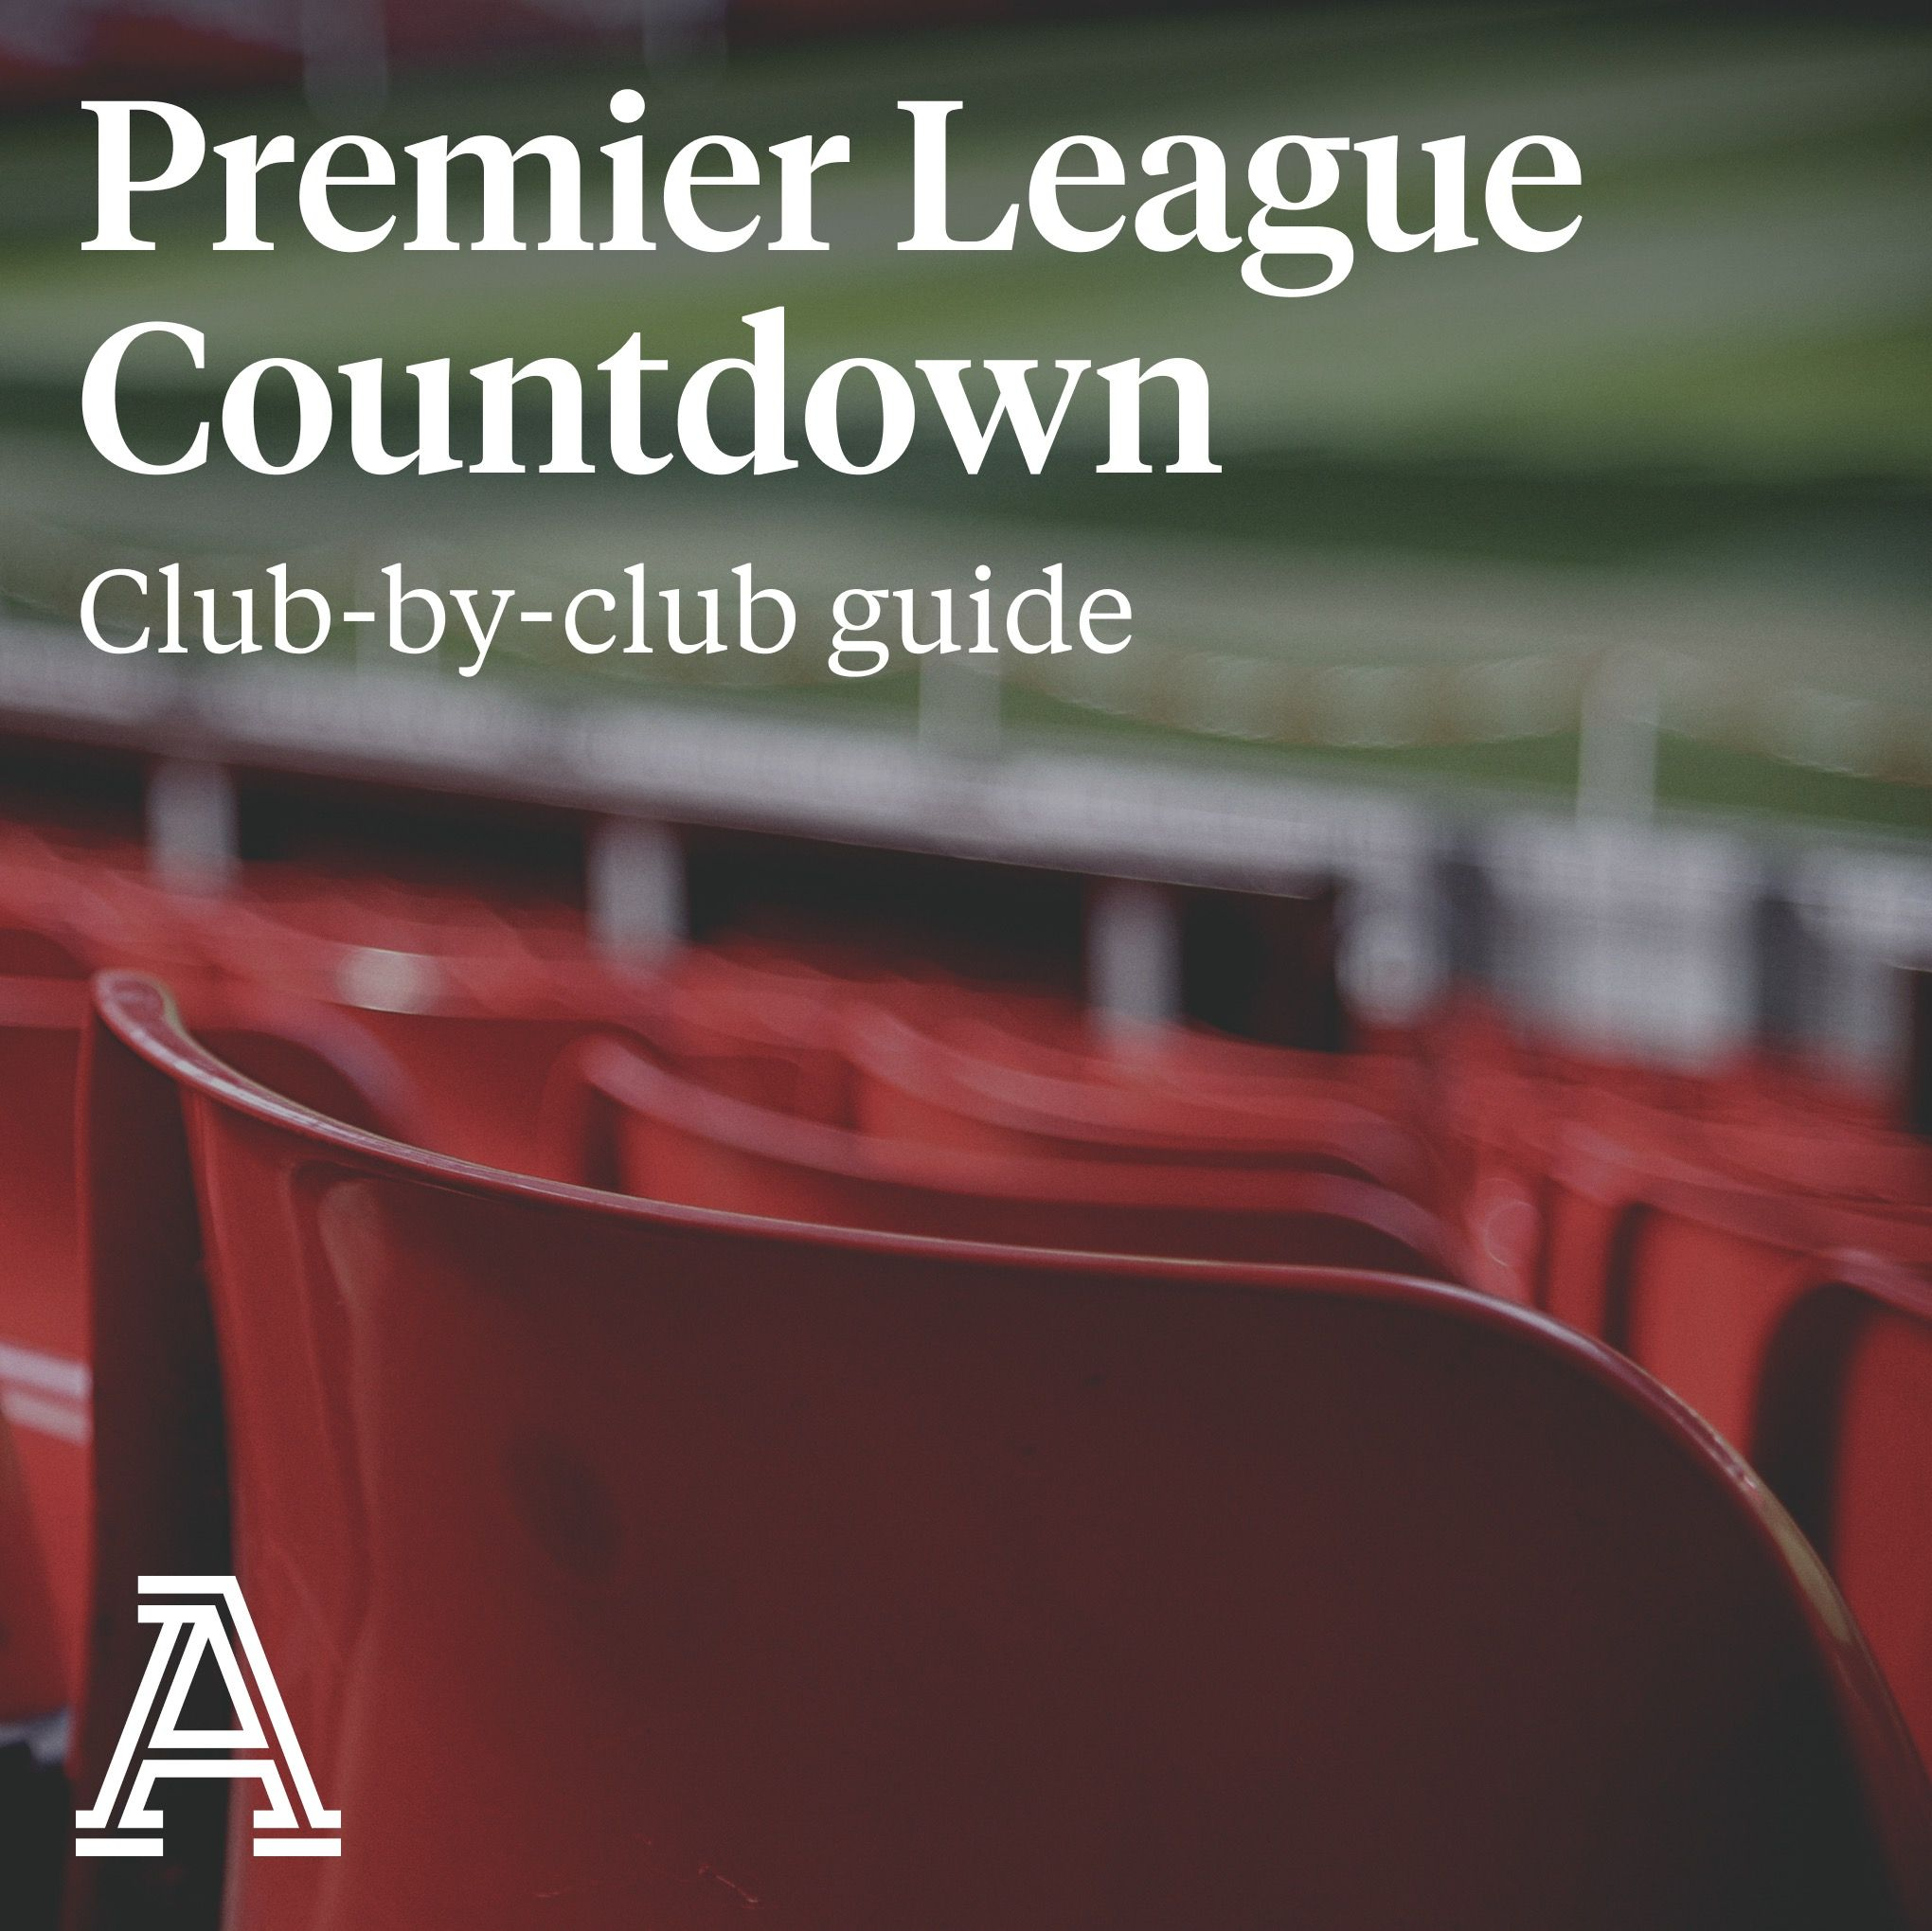 Premier League Countdown - Manchester City